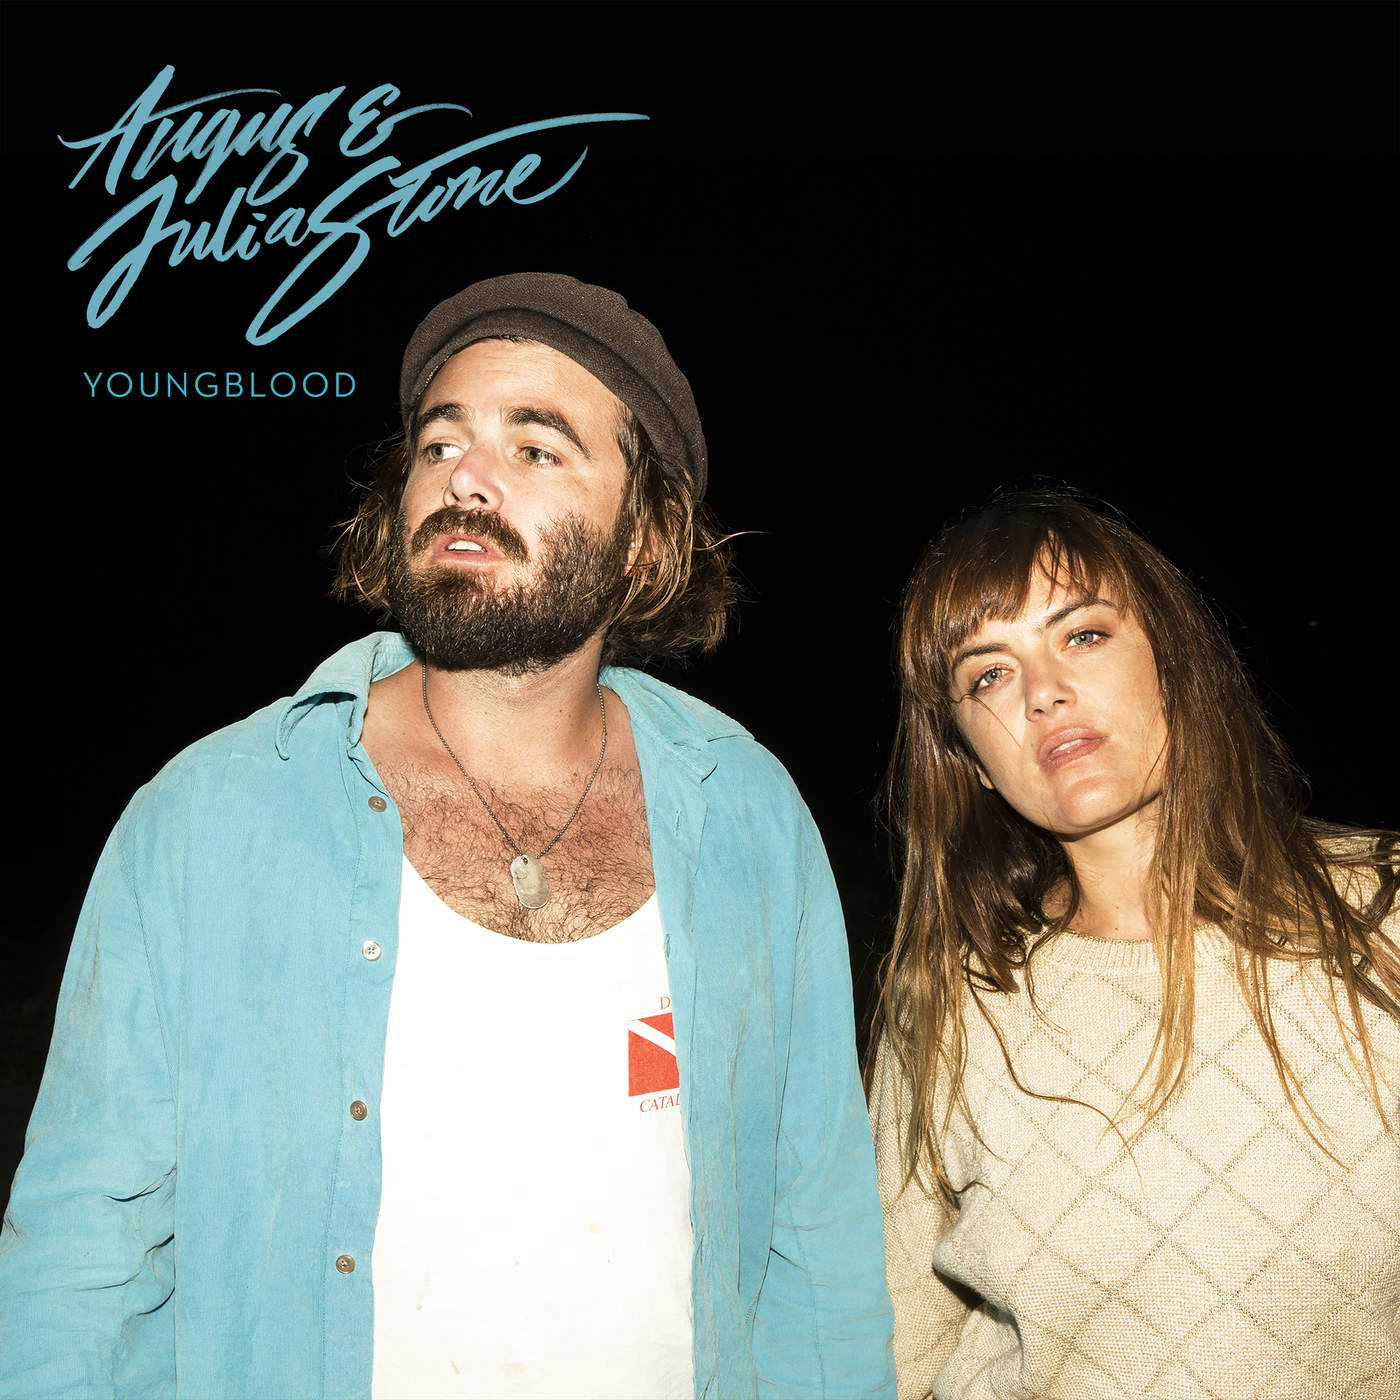 Angus And Julia Stone - Youngblood